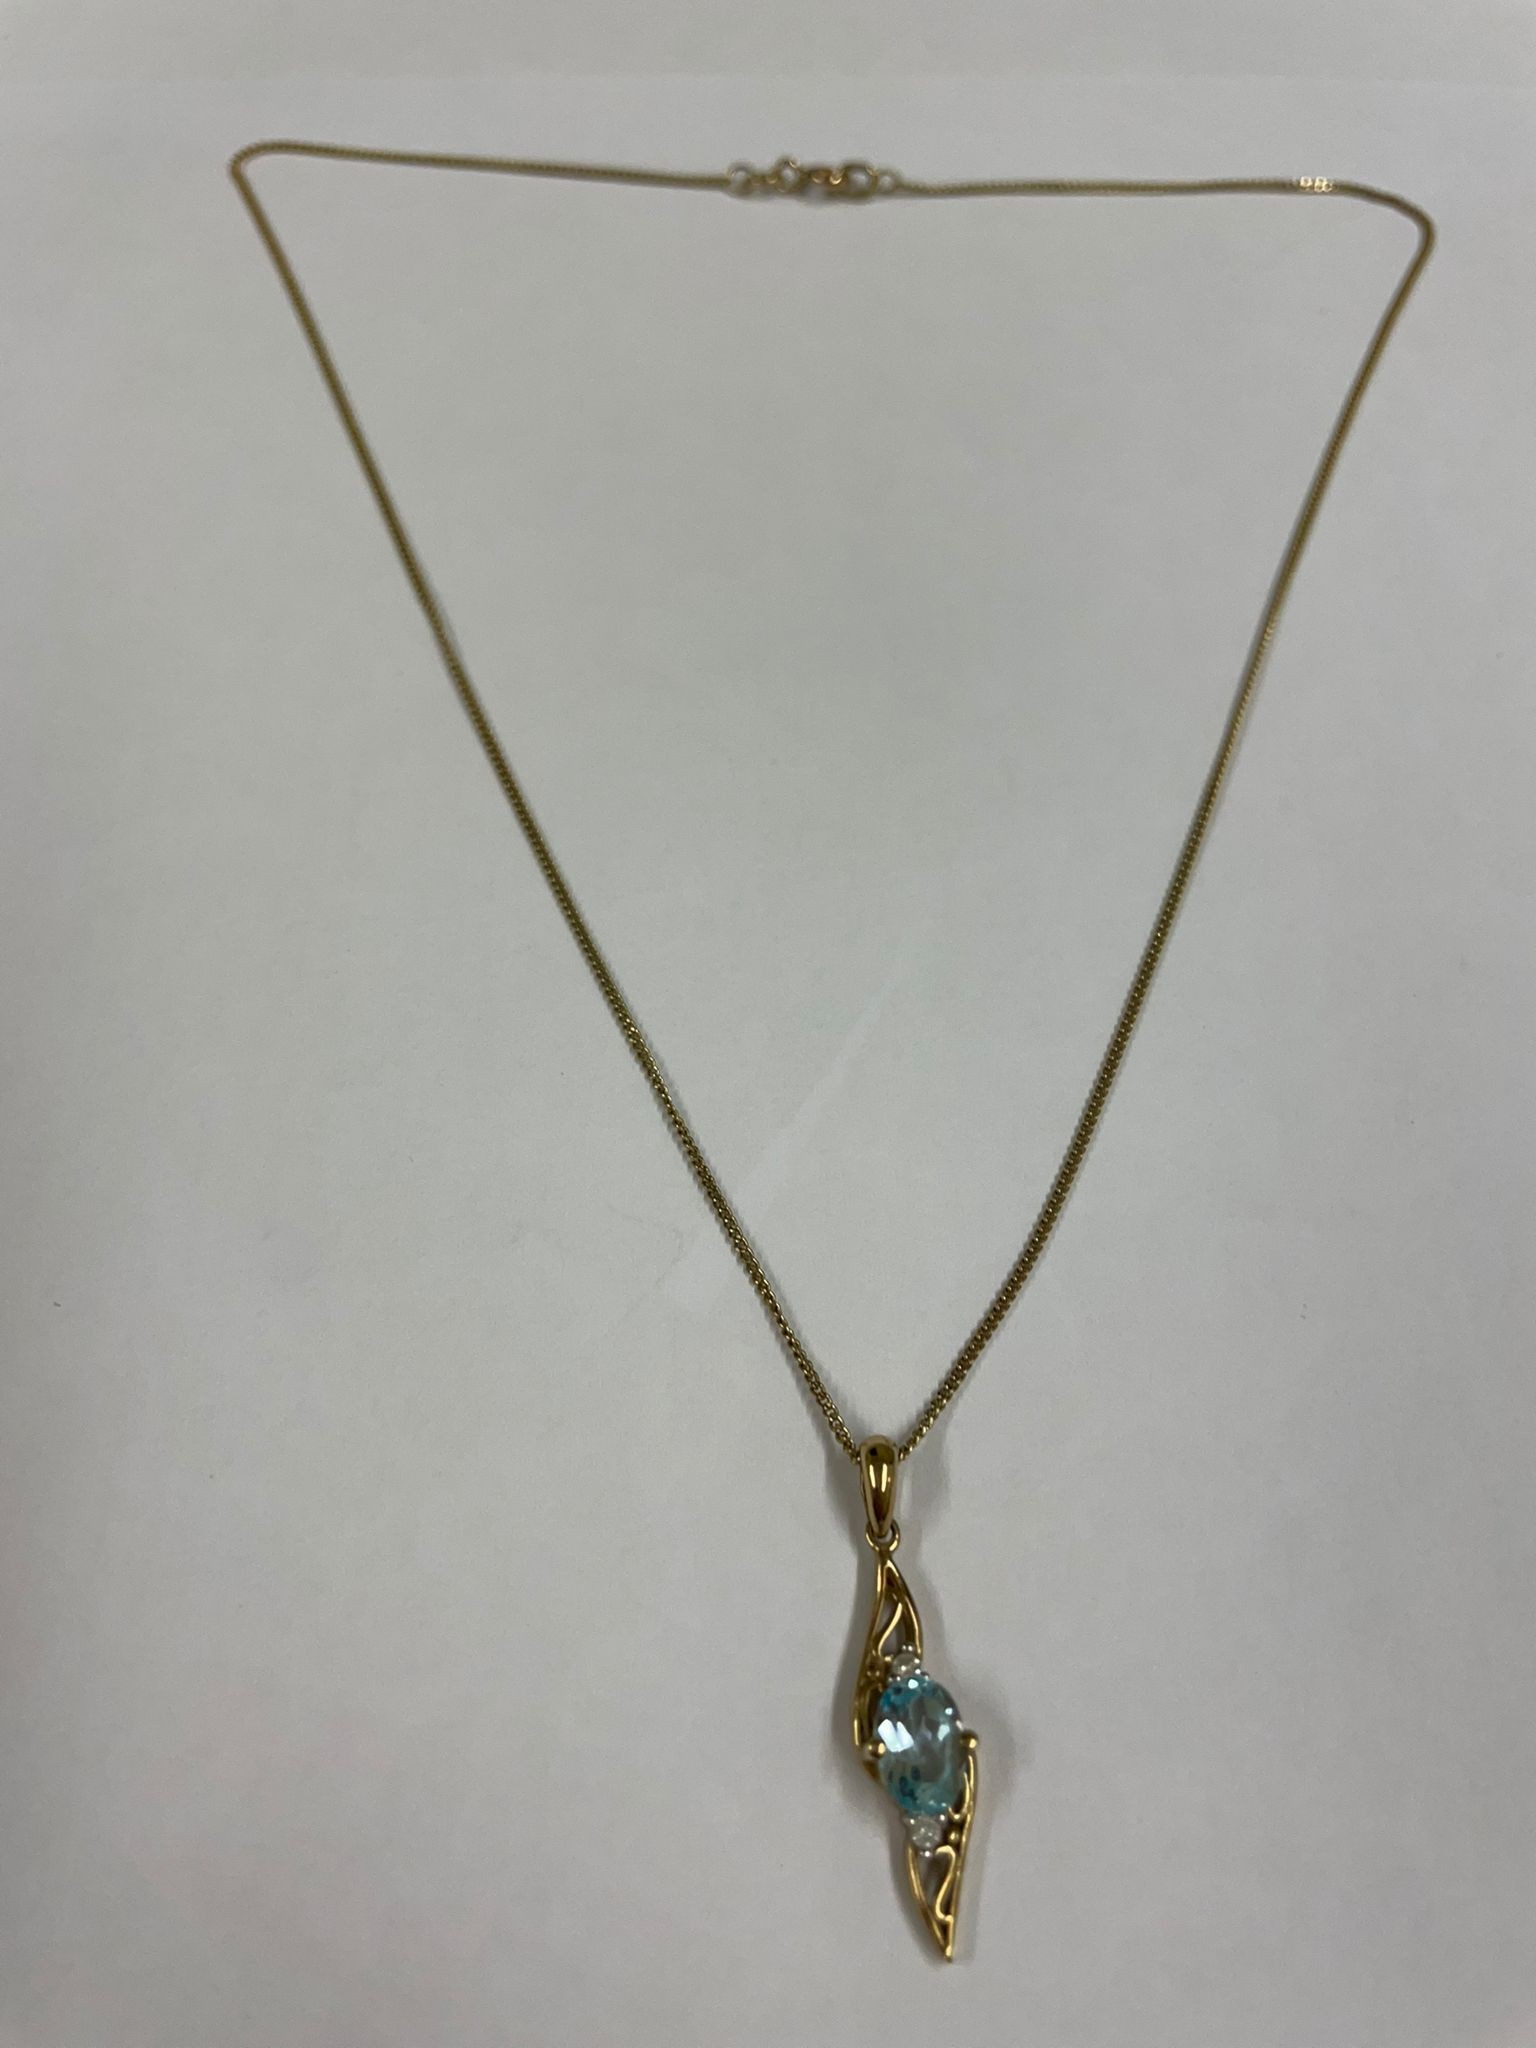 Vintage 9ct solid gold pendant with blue stone and 9ct gold chain - Image 3 of 3